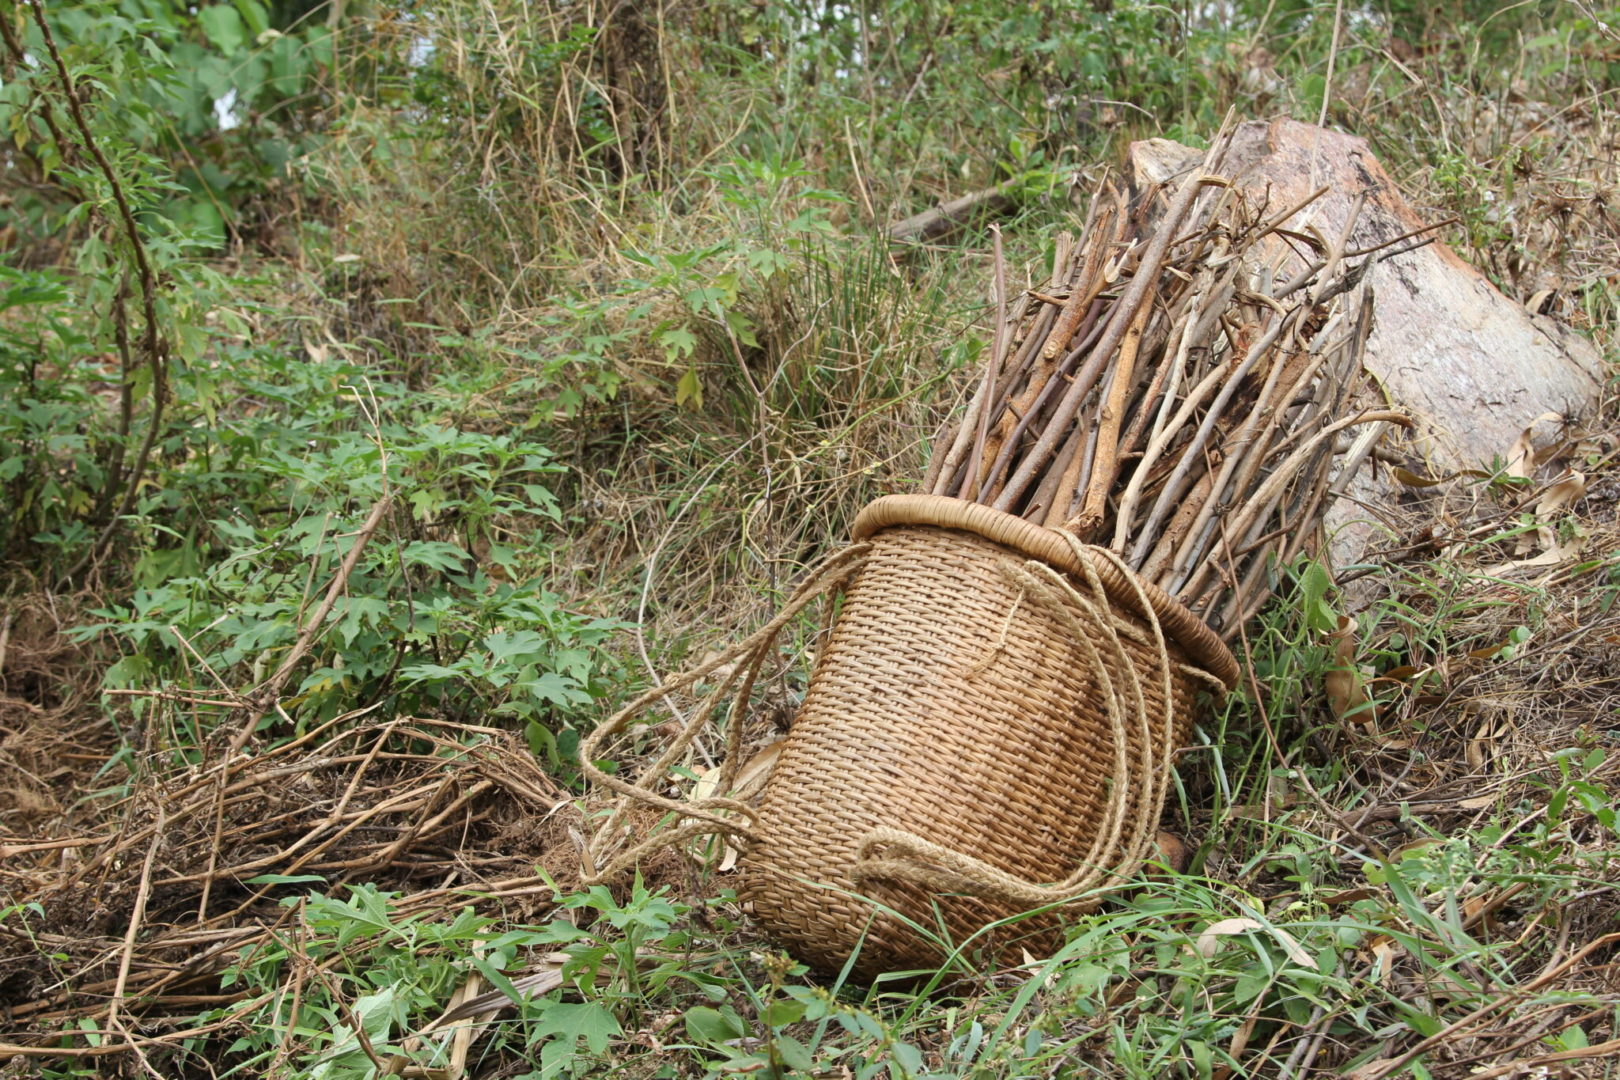 Improved land management practices can help build climate resilience in the Democratic Republic of Congo